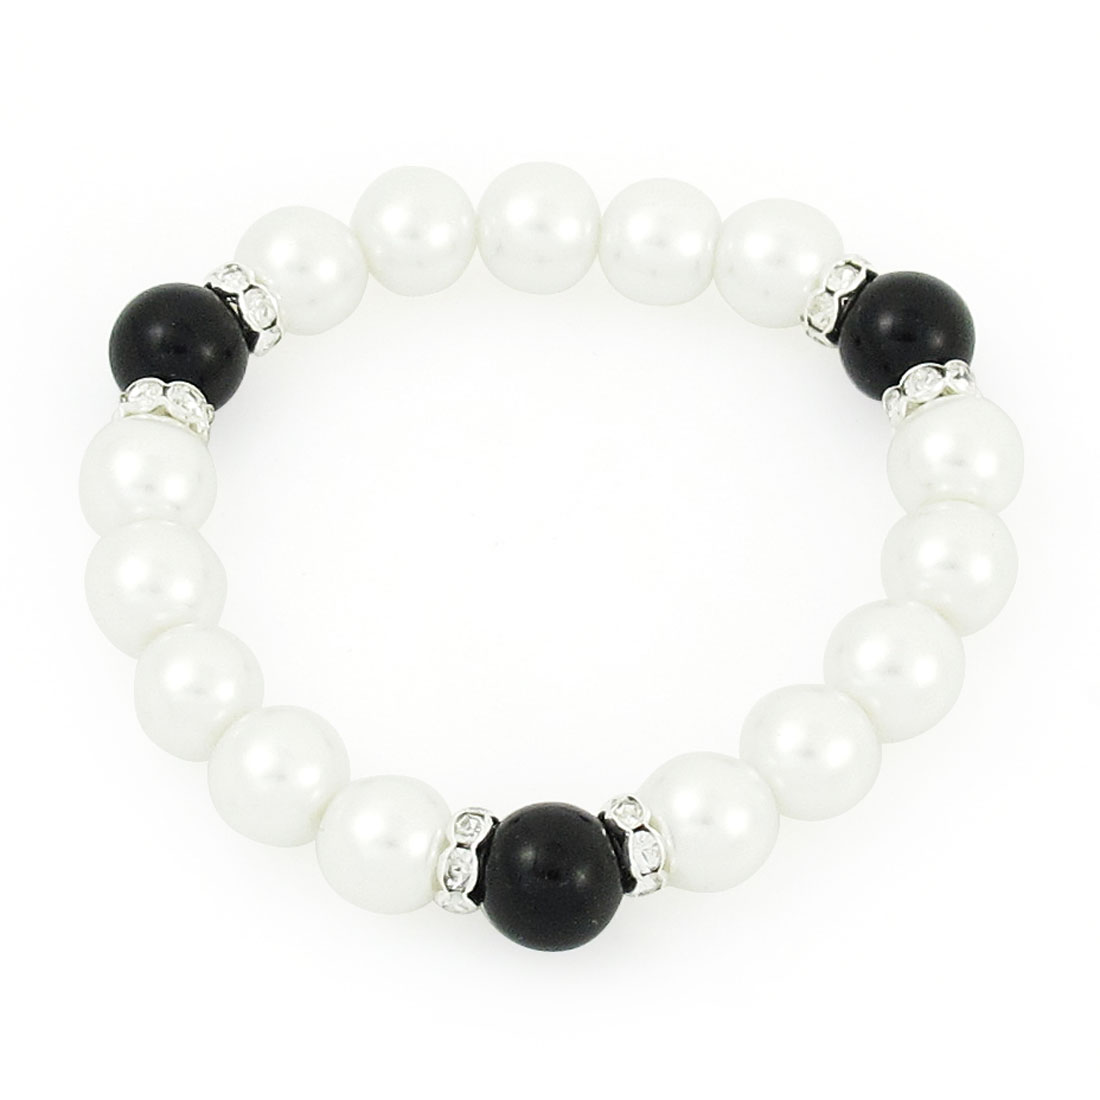 "Faux Black Agate White Imitation Pearls Beaded Stretchy Bracelets 7.1"" for Ladies"